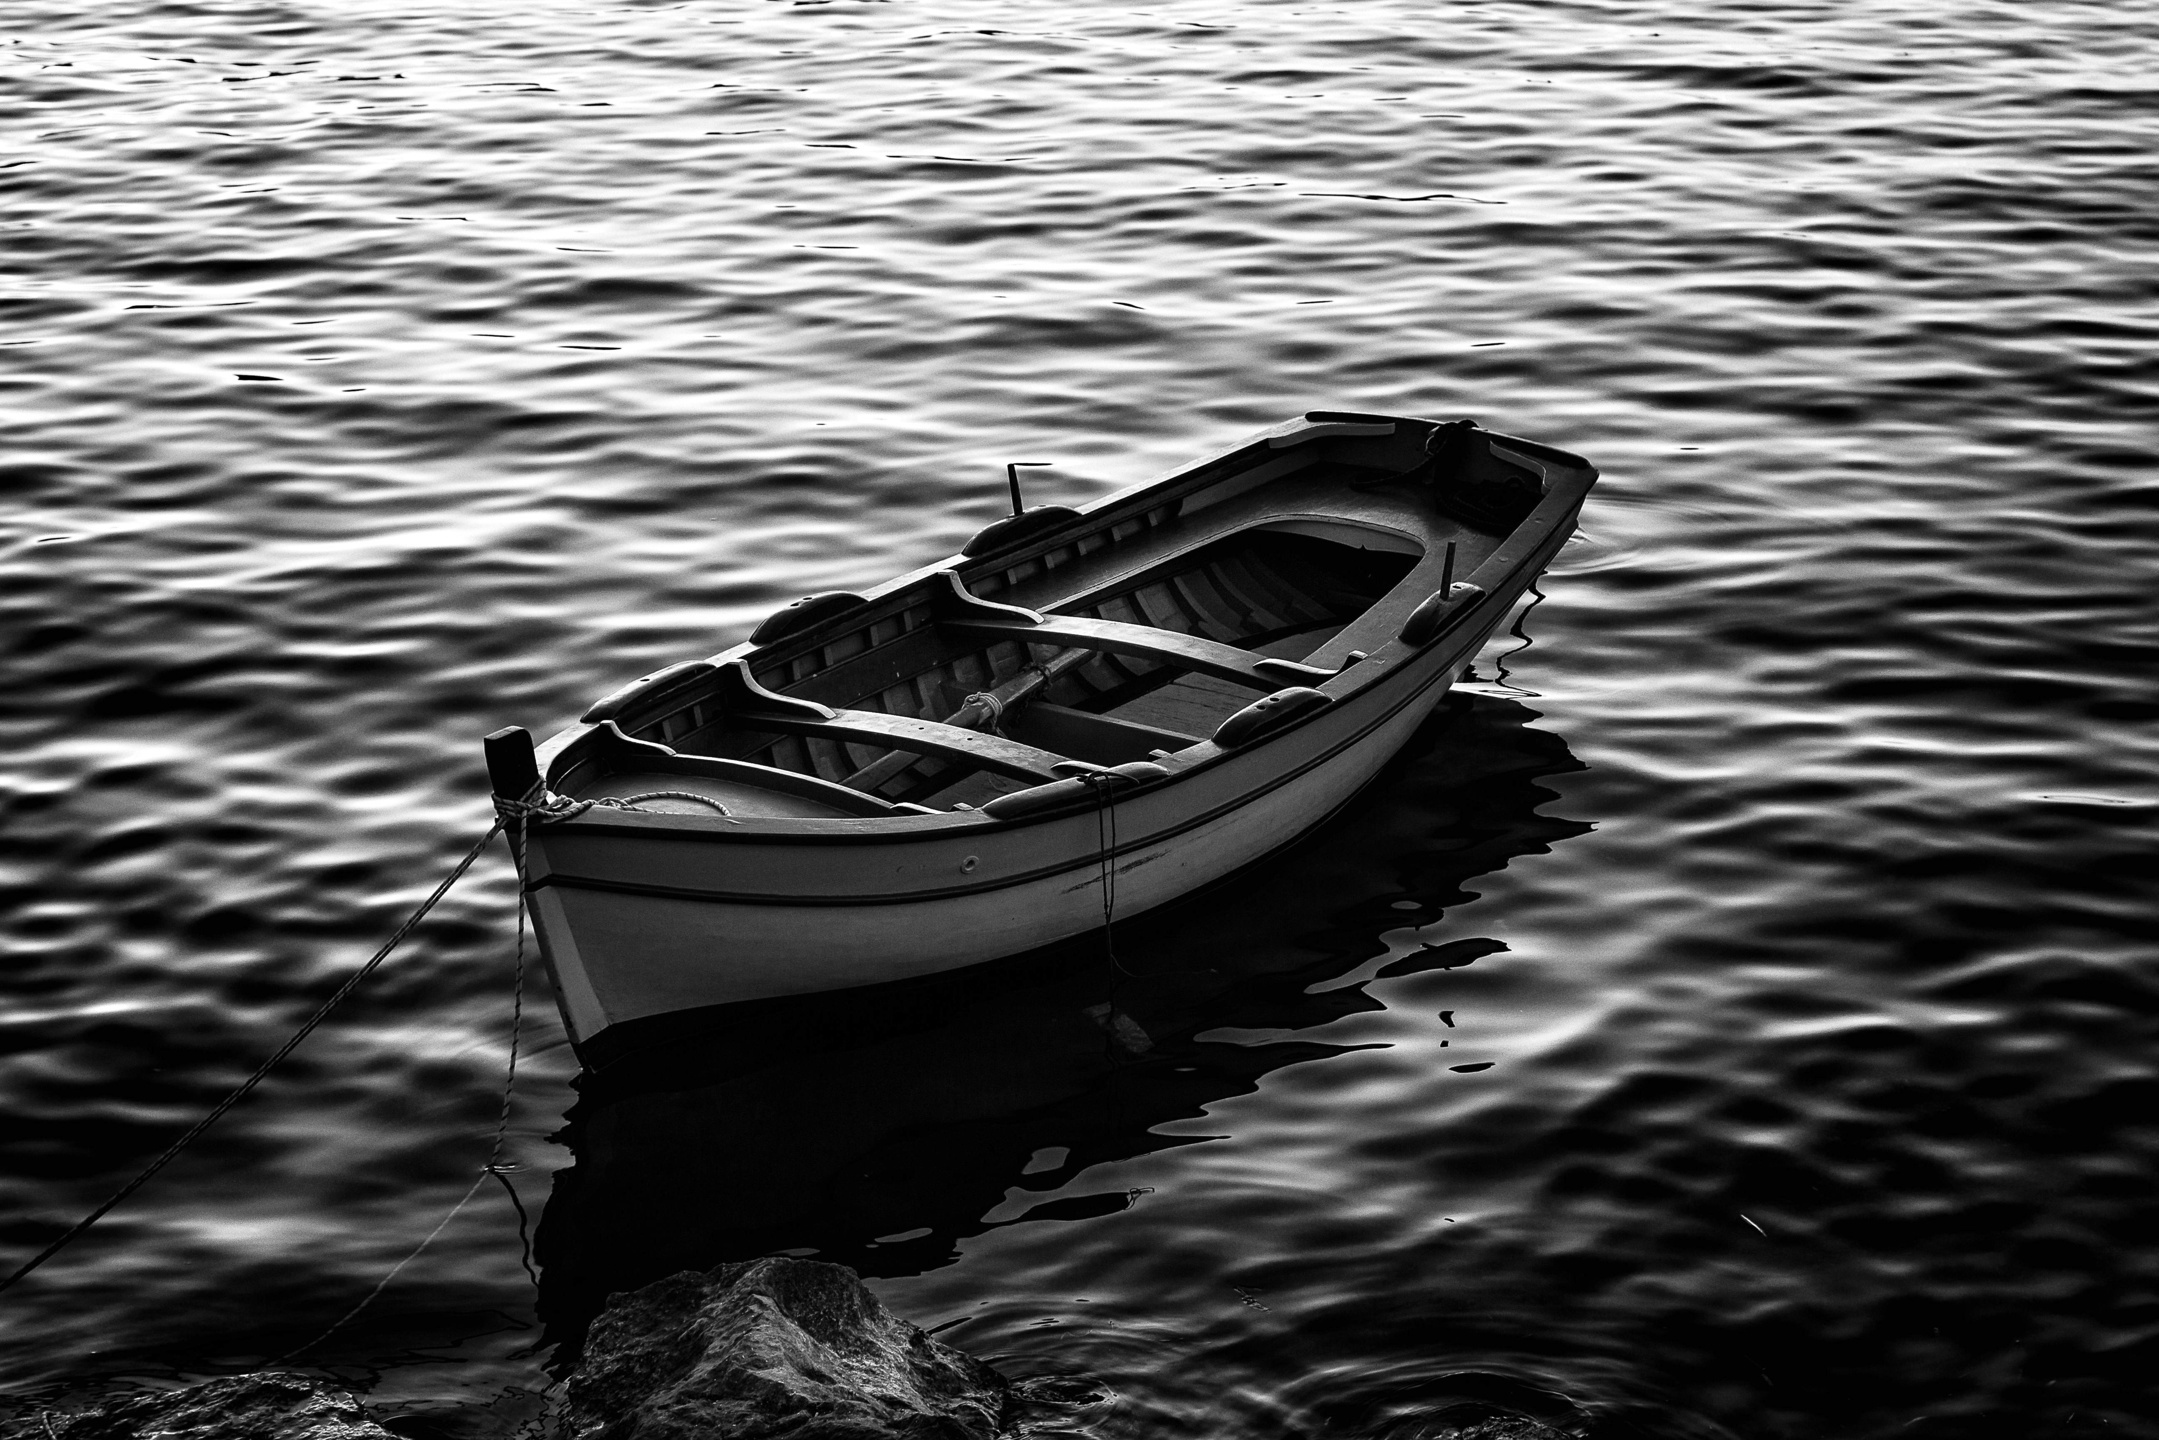 Near the shore, there's an empty boat....